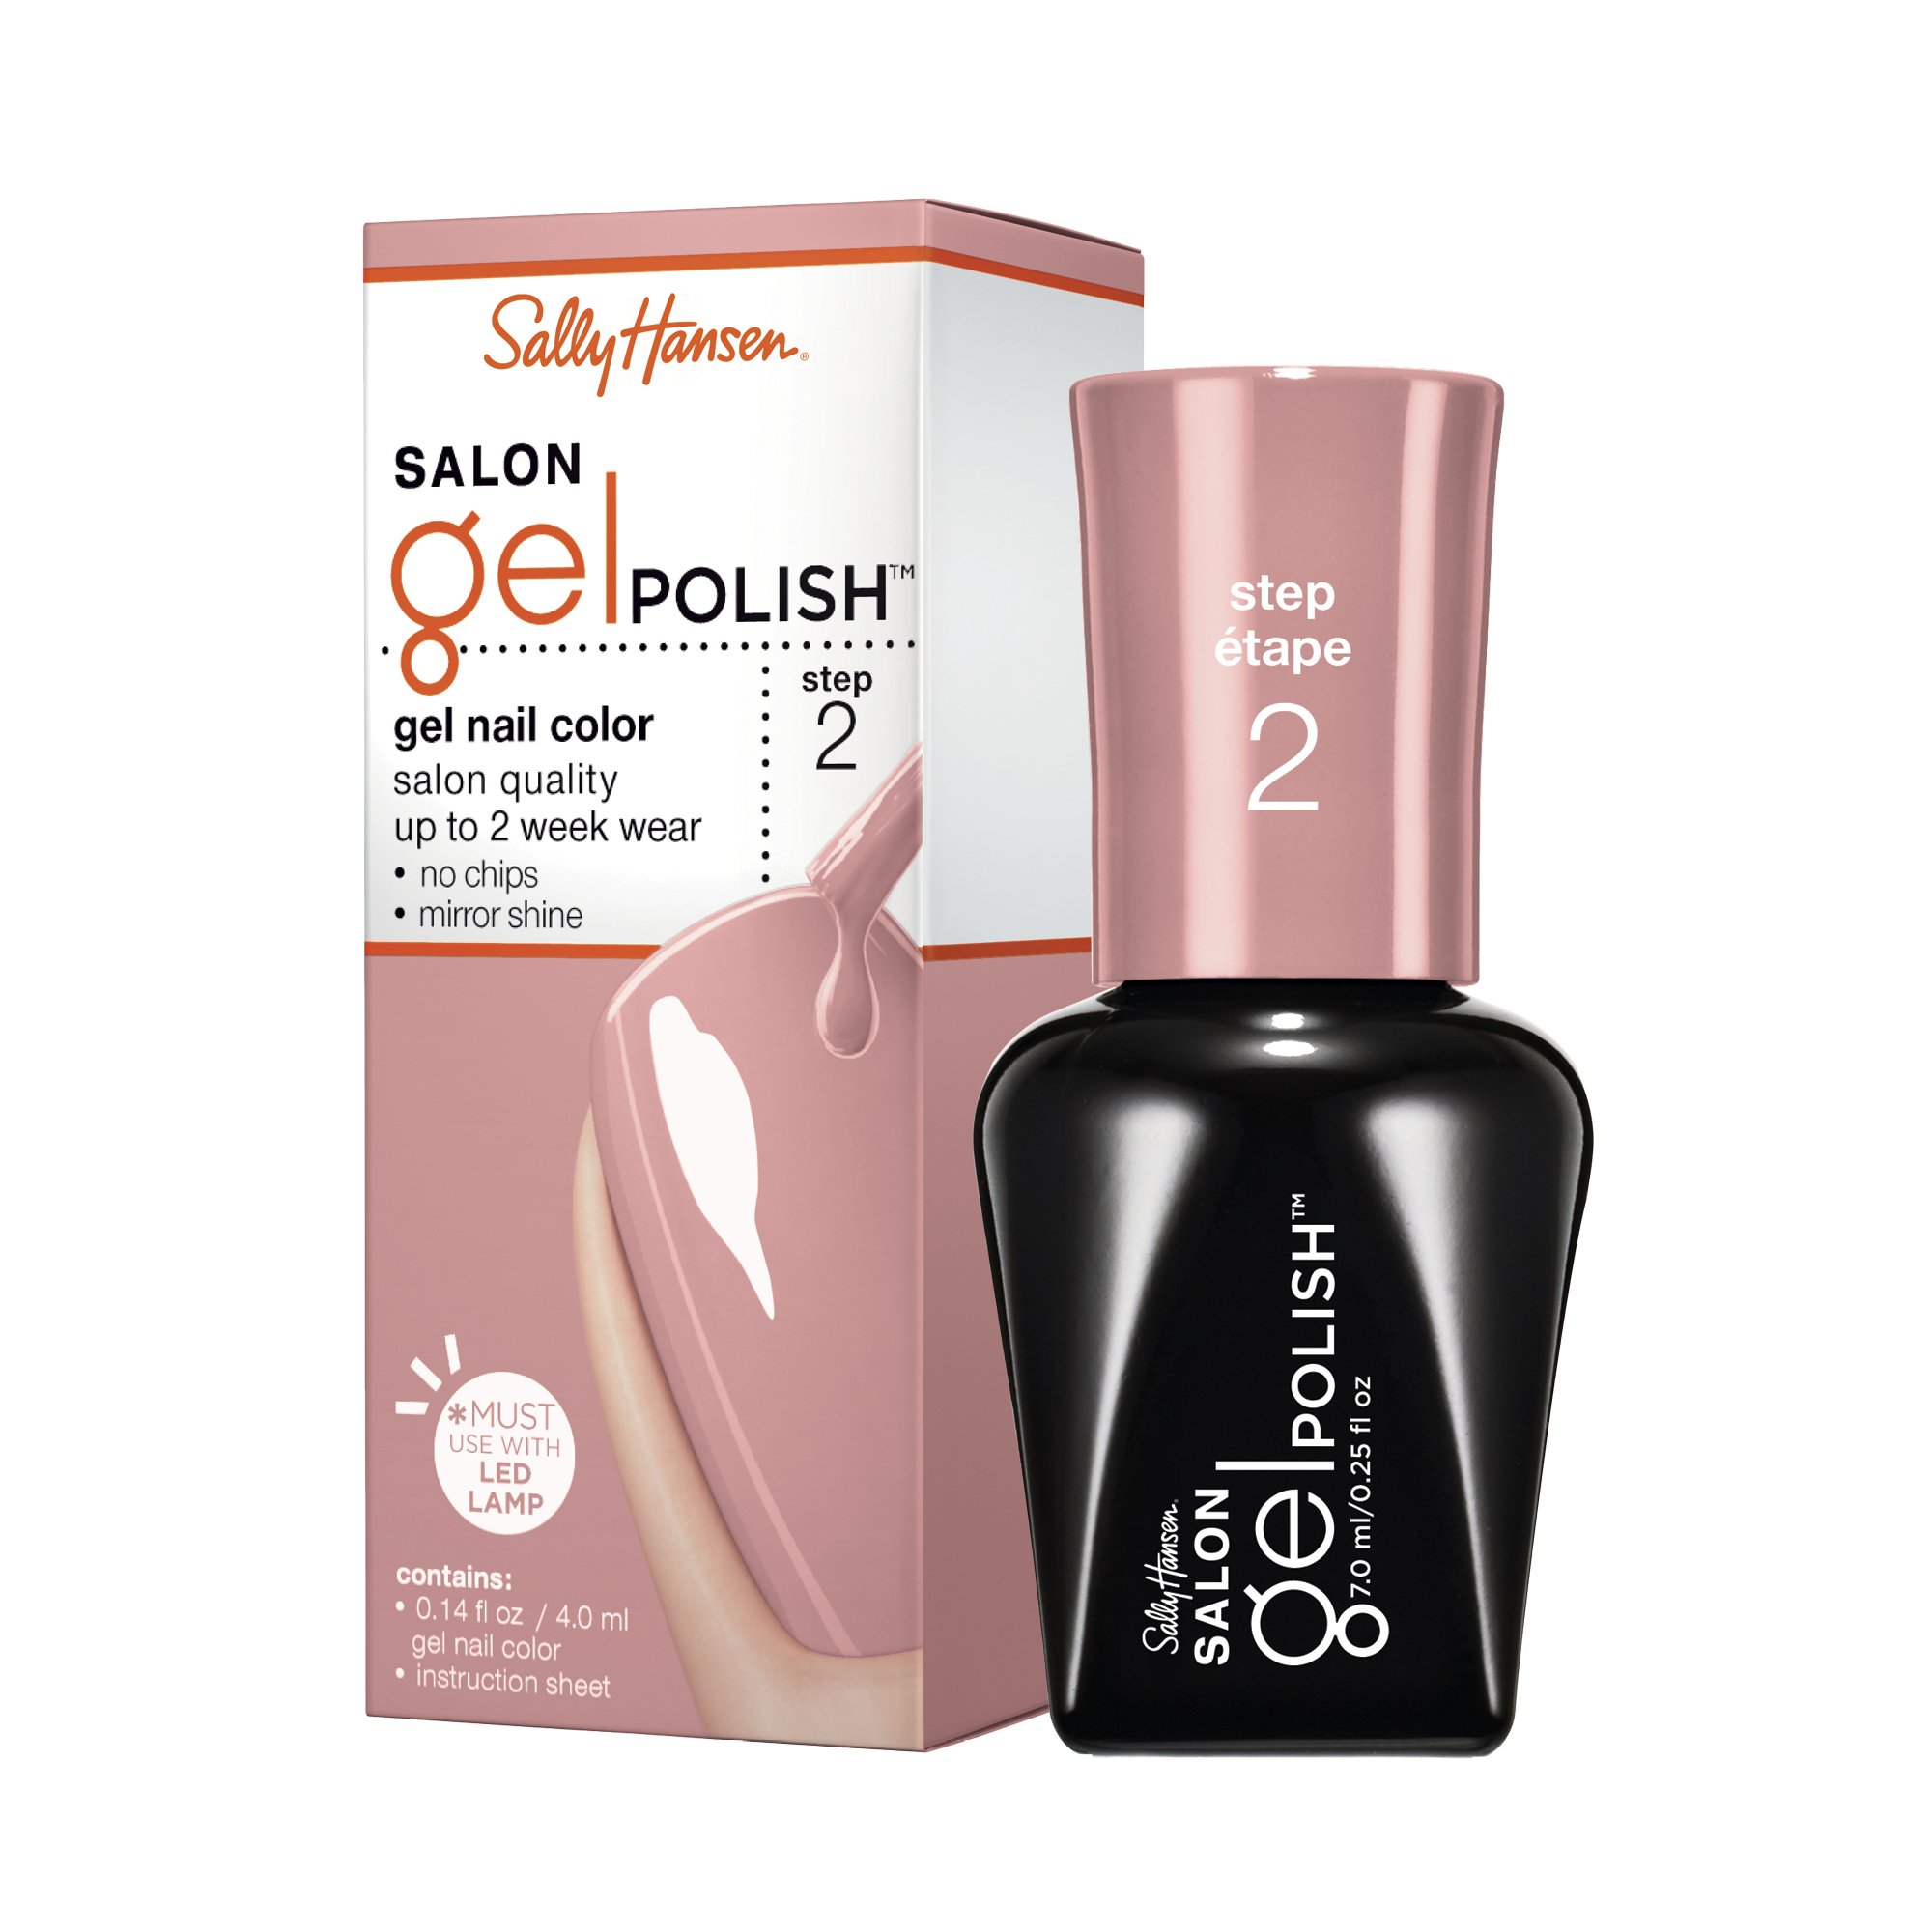 sally hansen salon gel polish starter kit instructions